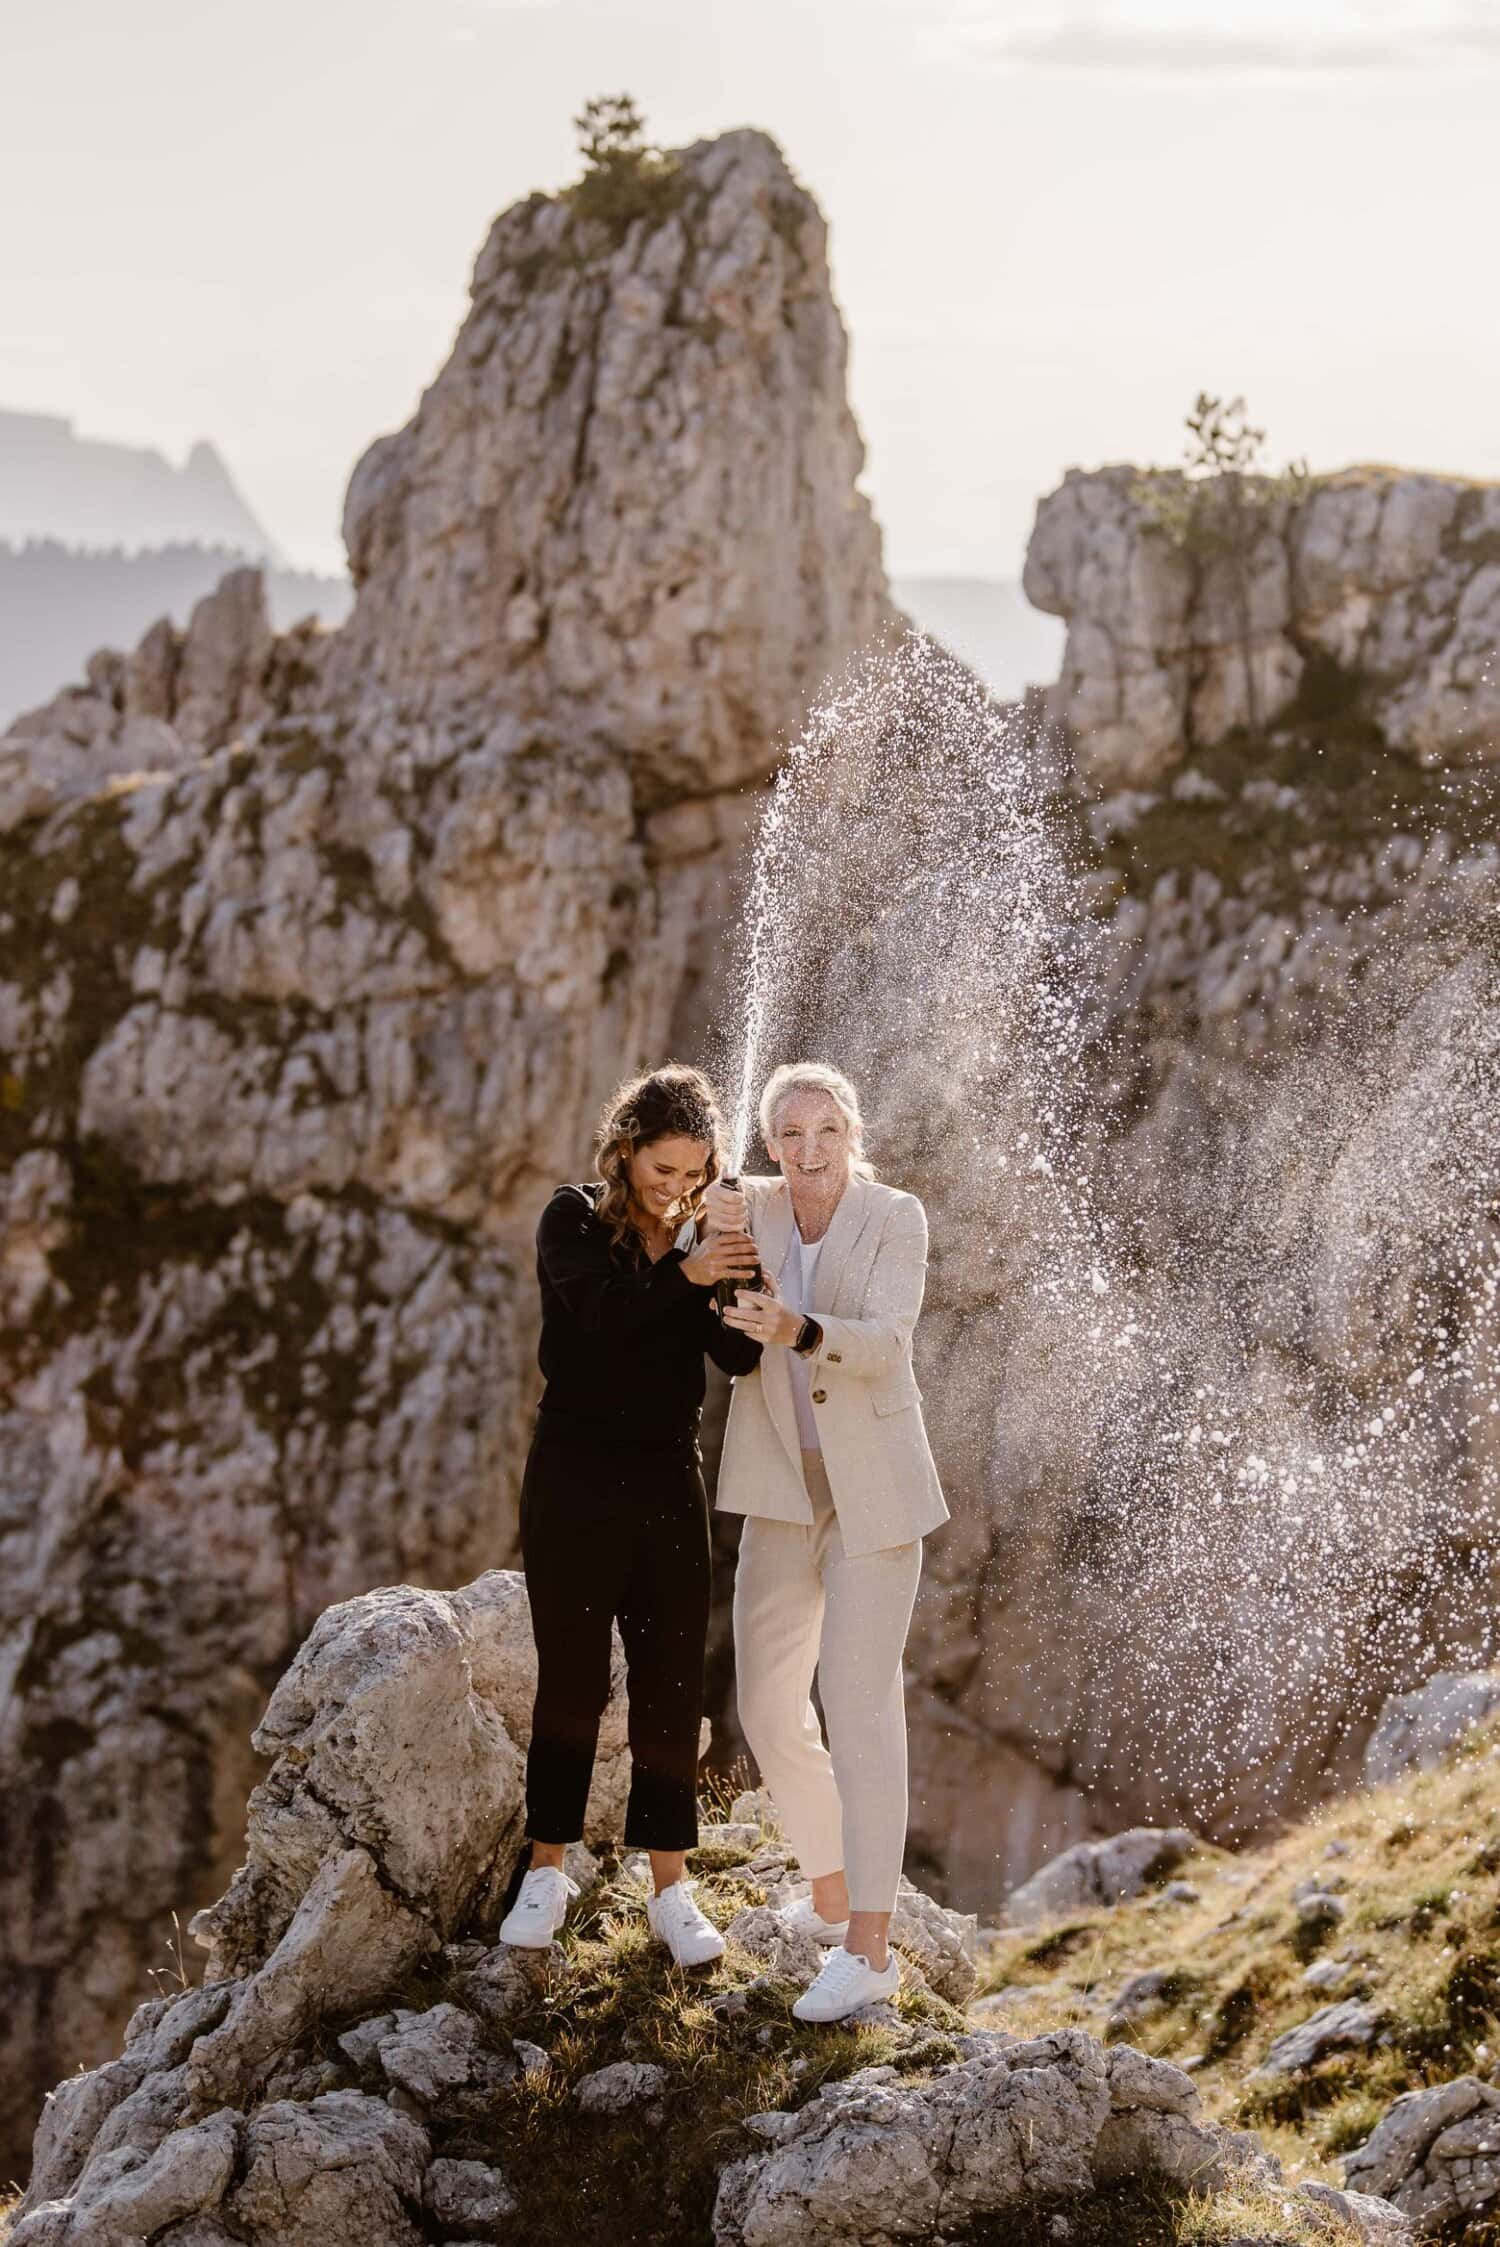 Two brides pop a bottle of champagne in the Italian Dolomites.